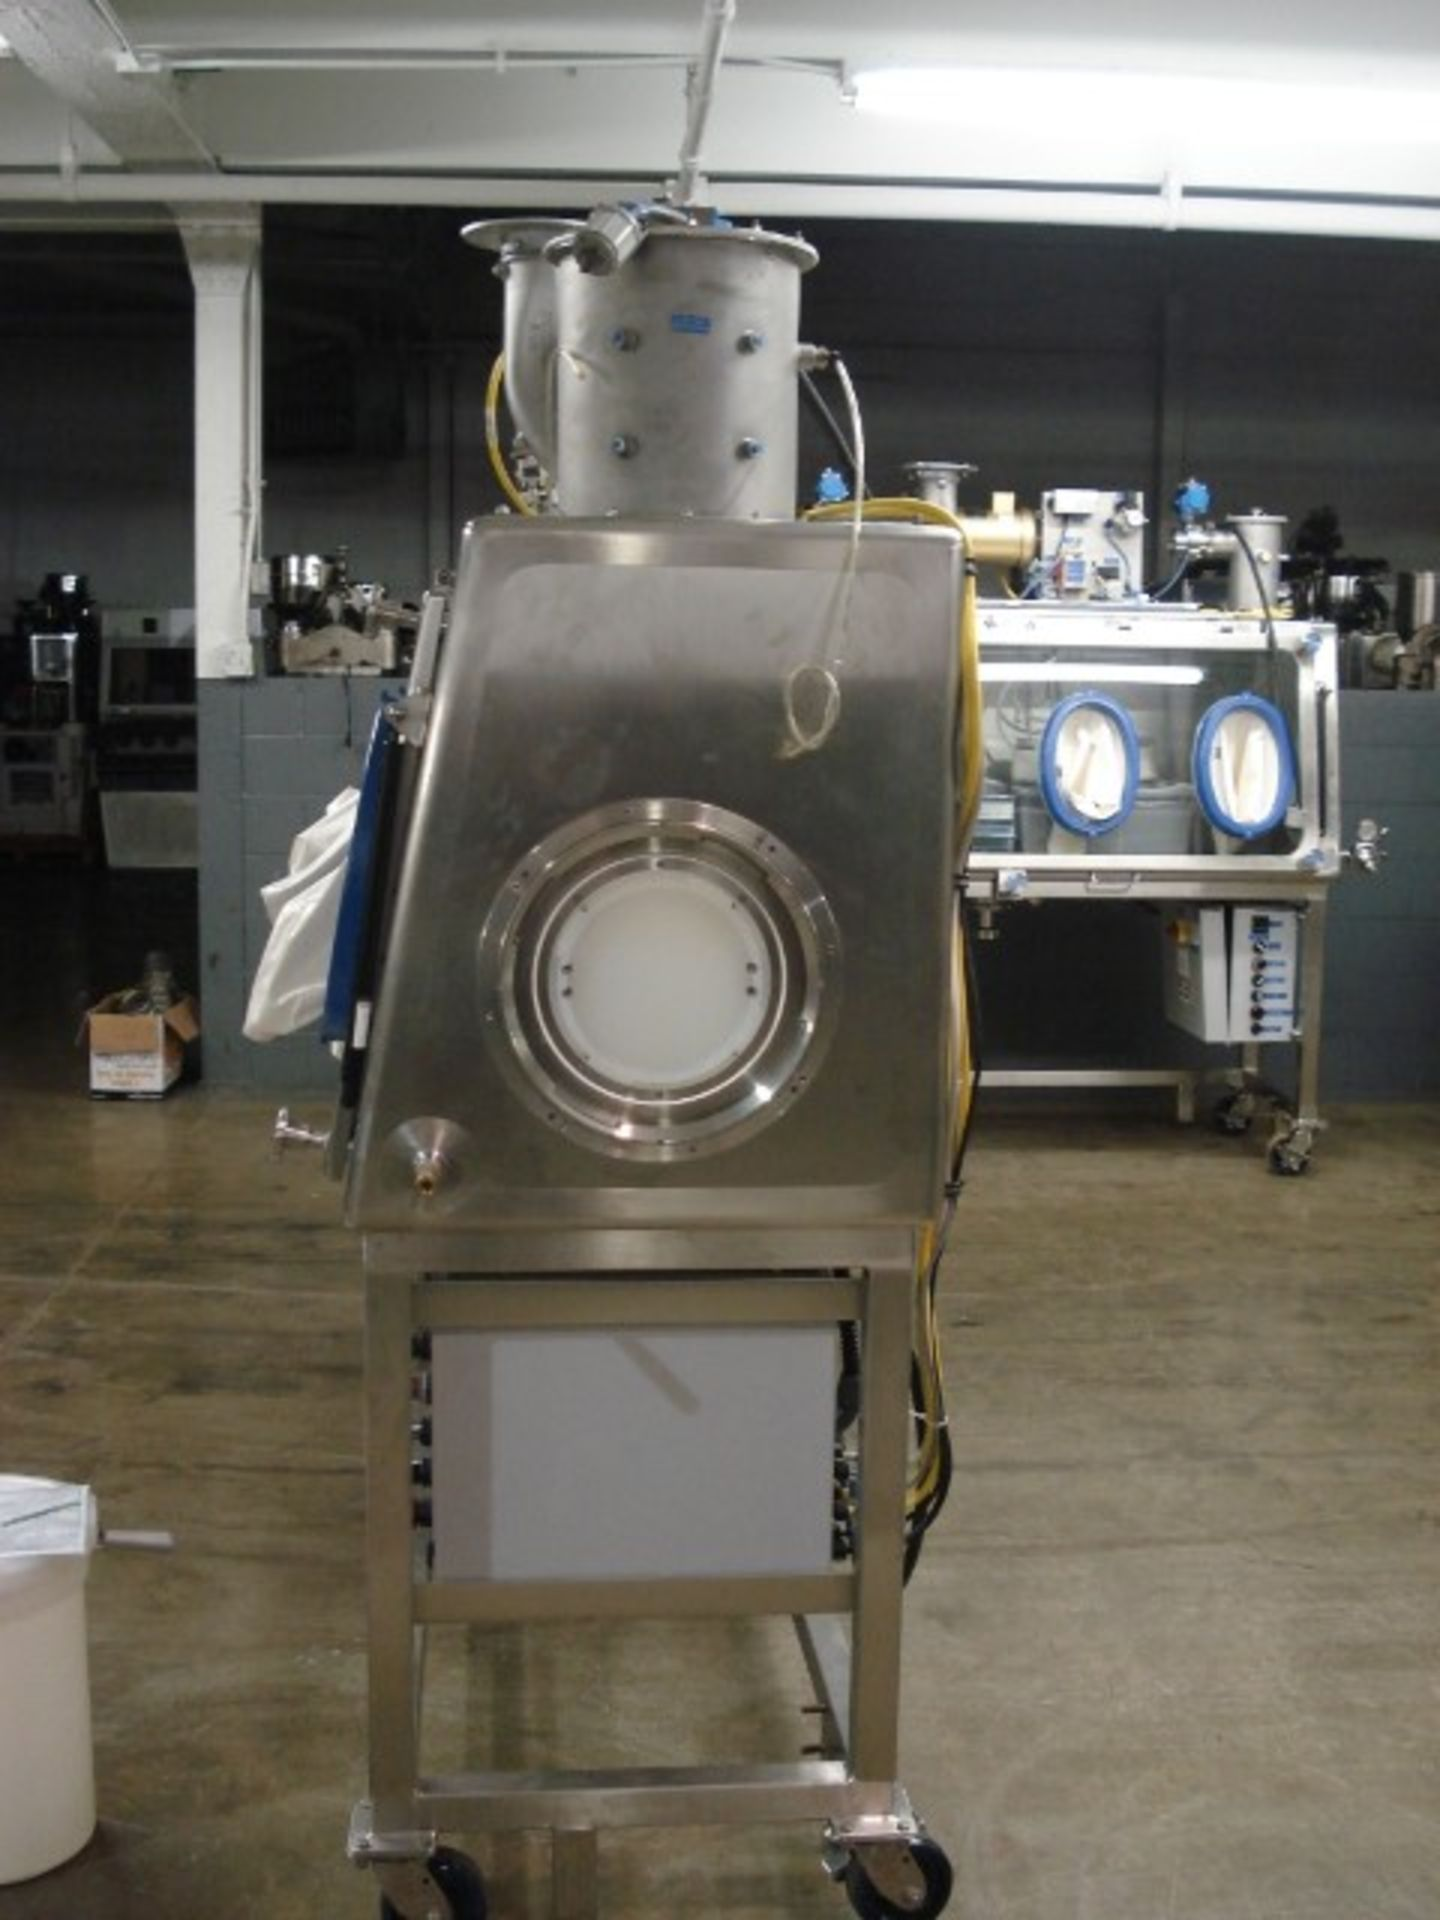 Lot 101 - Fitzpatrick Fitzmill, model L1A, S/S with Isolator